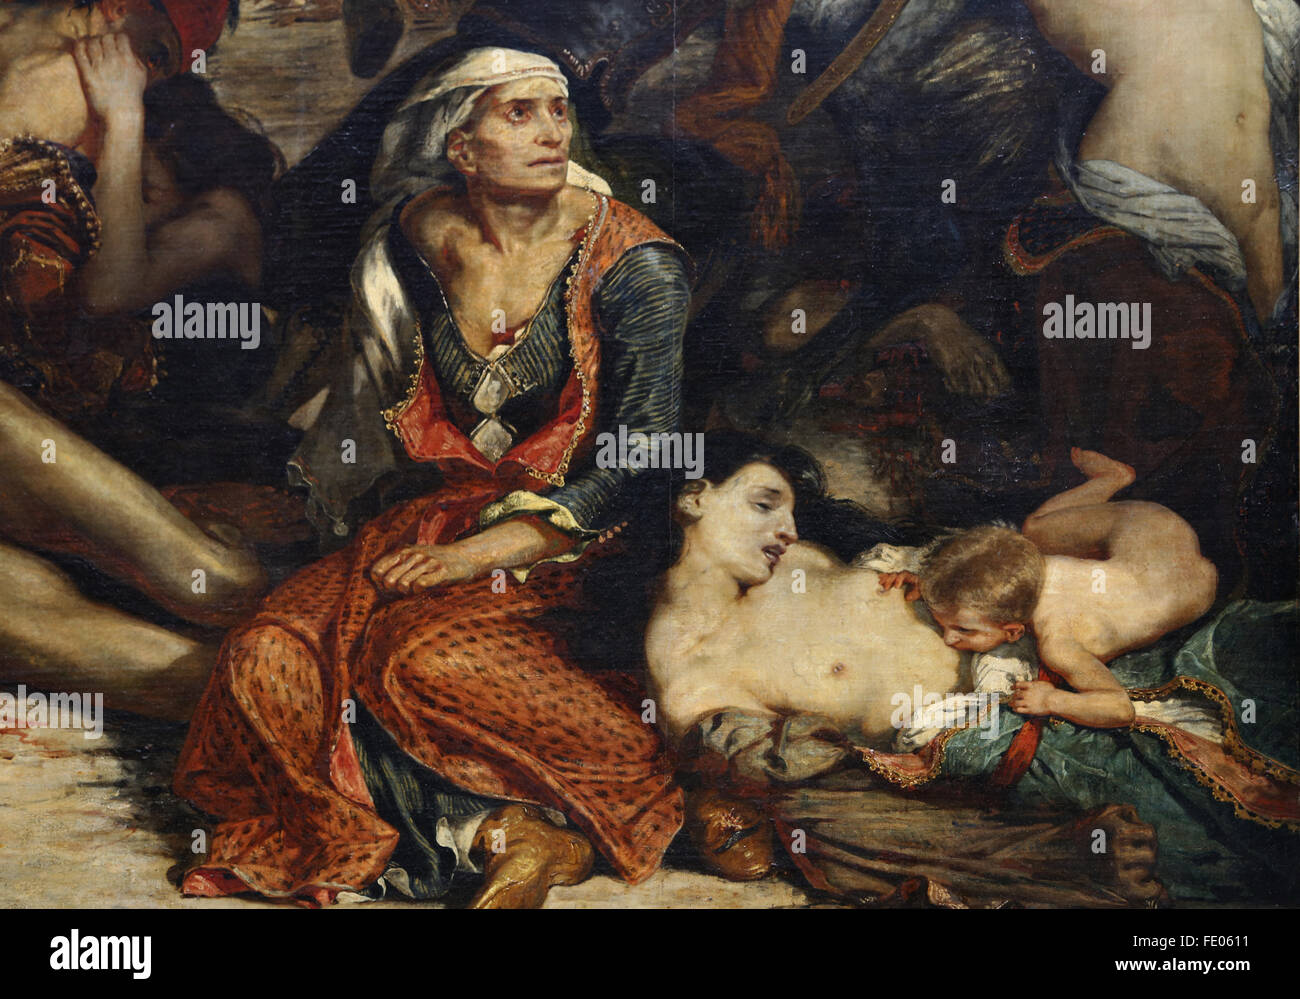 The Massacre at Chios (11 April 1822), 1824 by French painter Eugene Delacroix (1798-1863). Greek War of Independence. - Stock Image